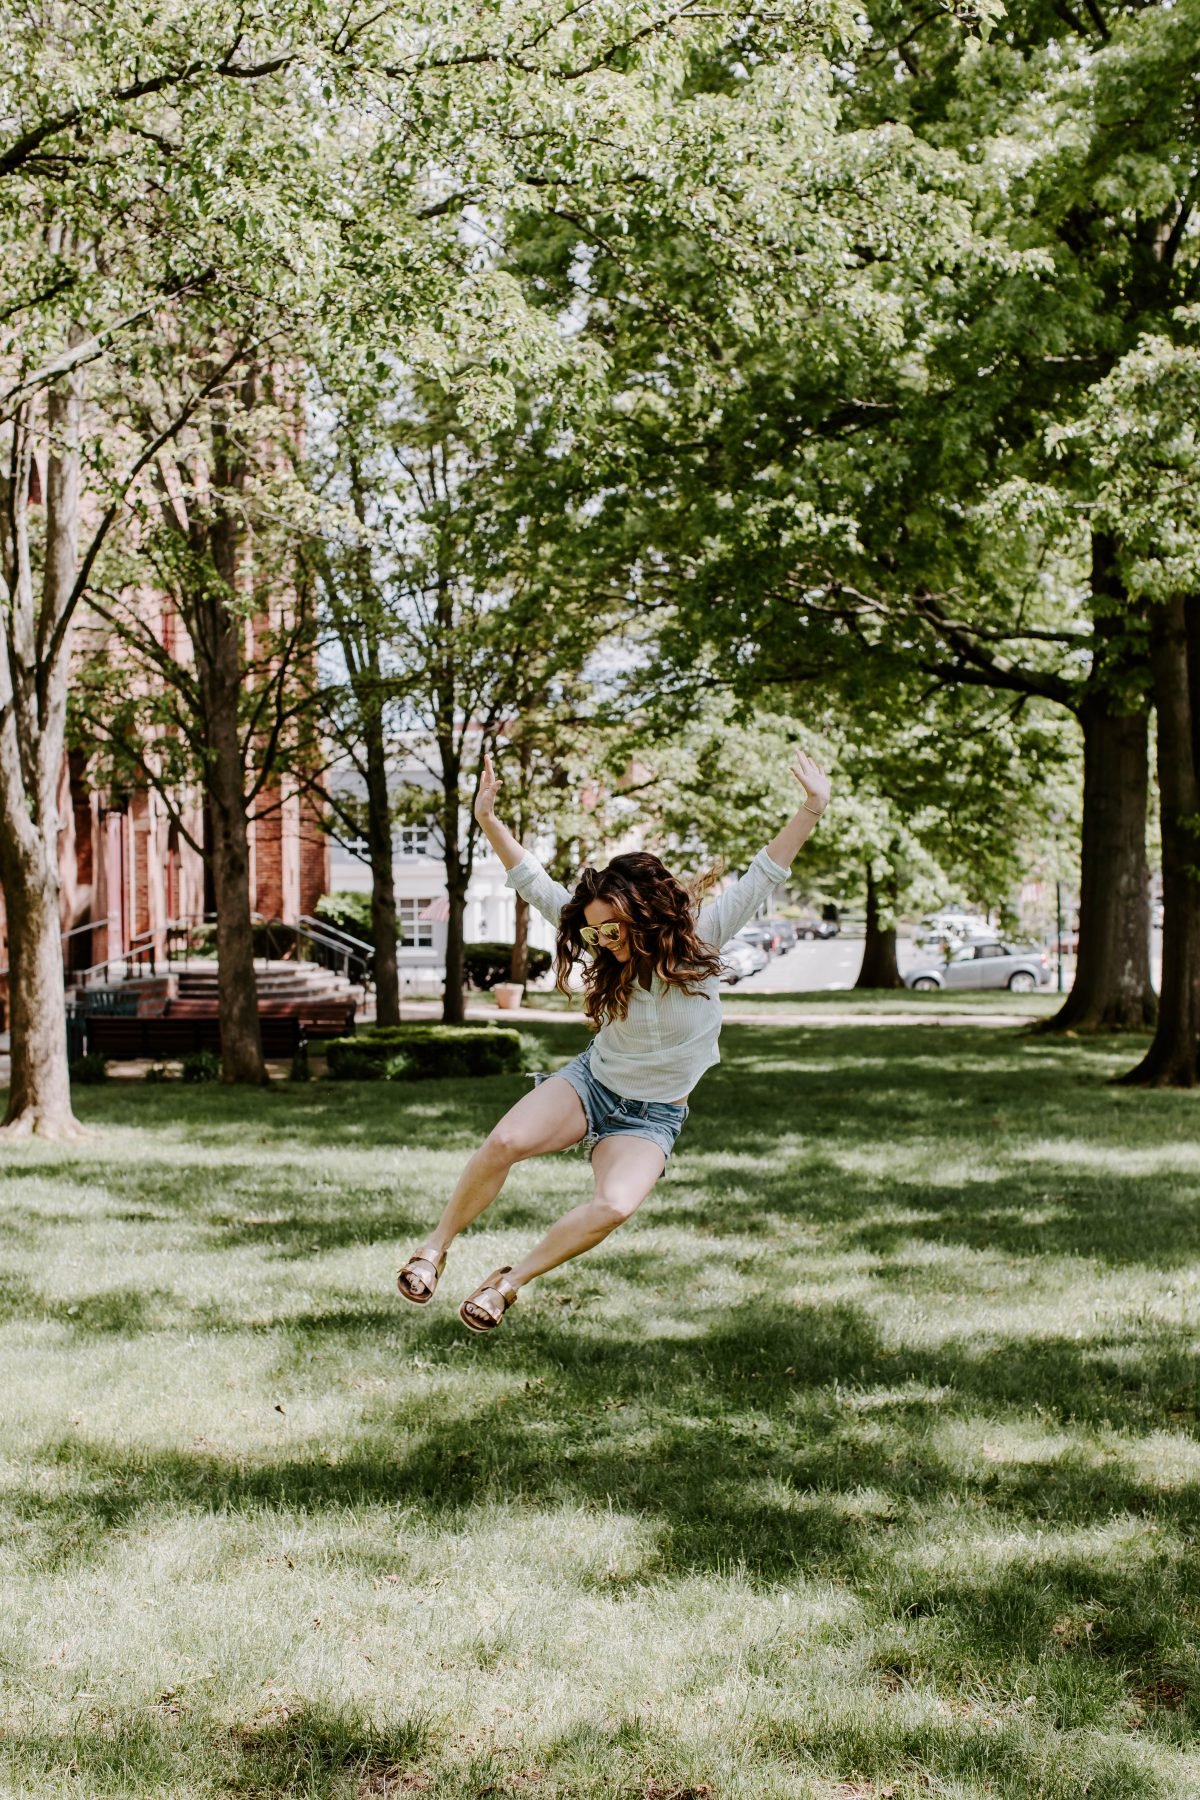 Woman wearing shorts and a shirt clicking heels while jumping in the air - Five Reasons Not to Exercise